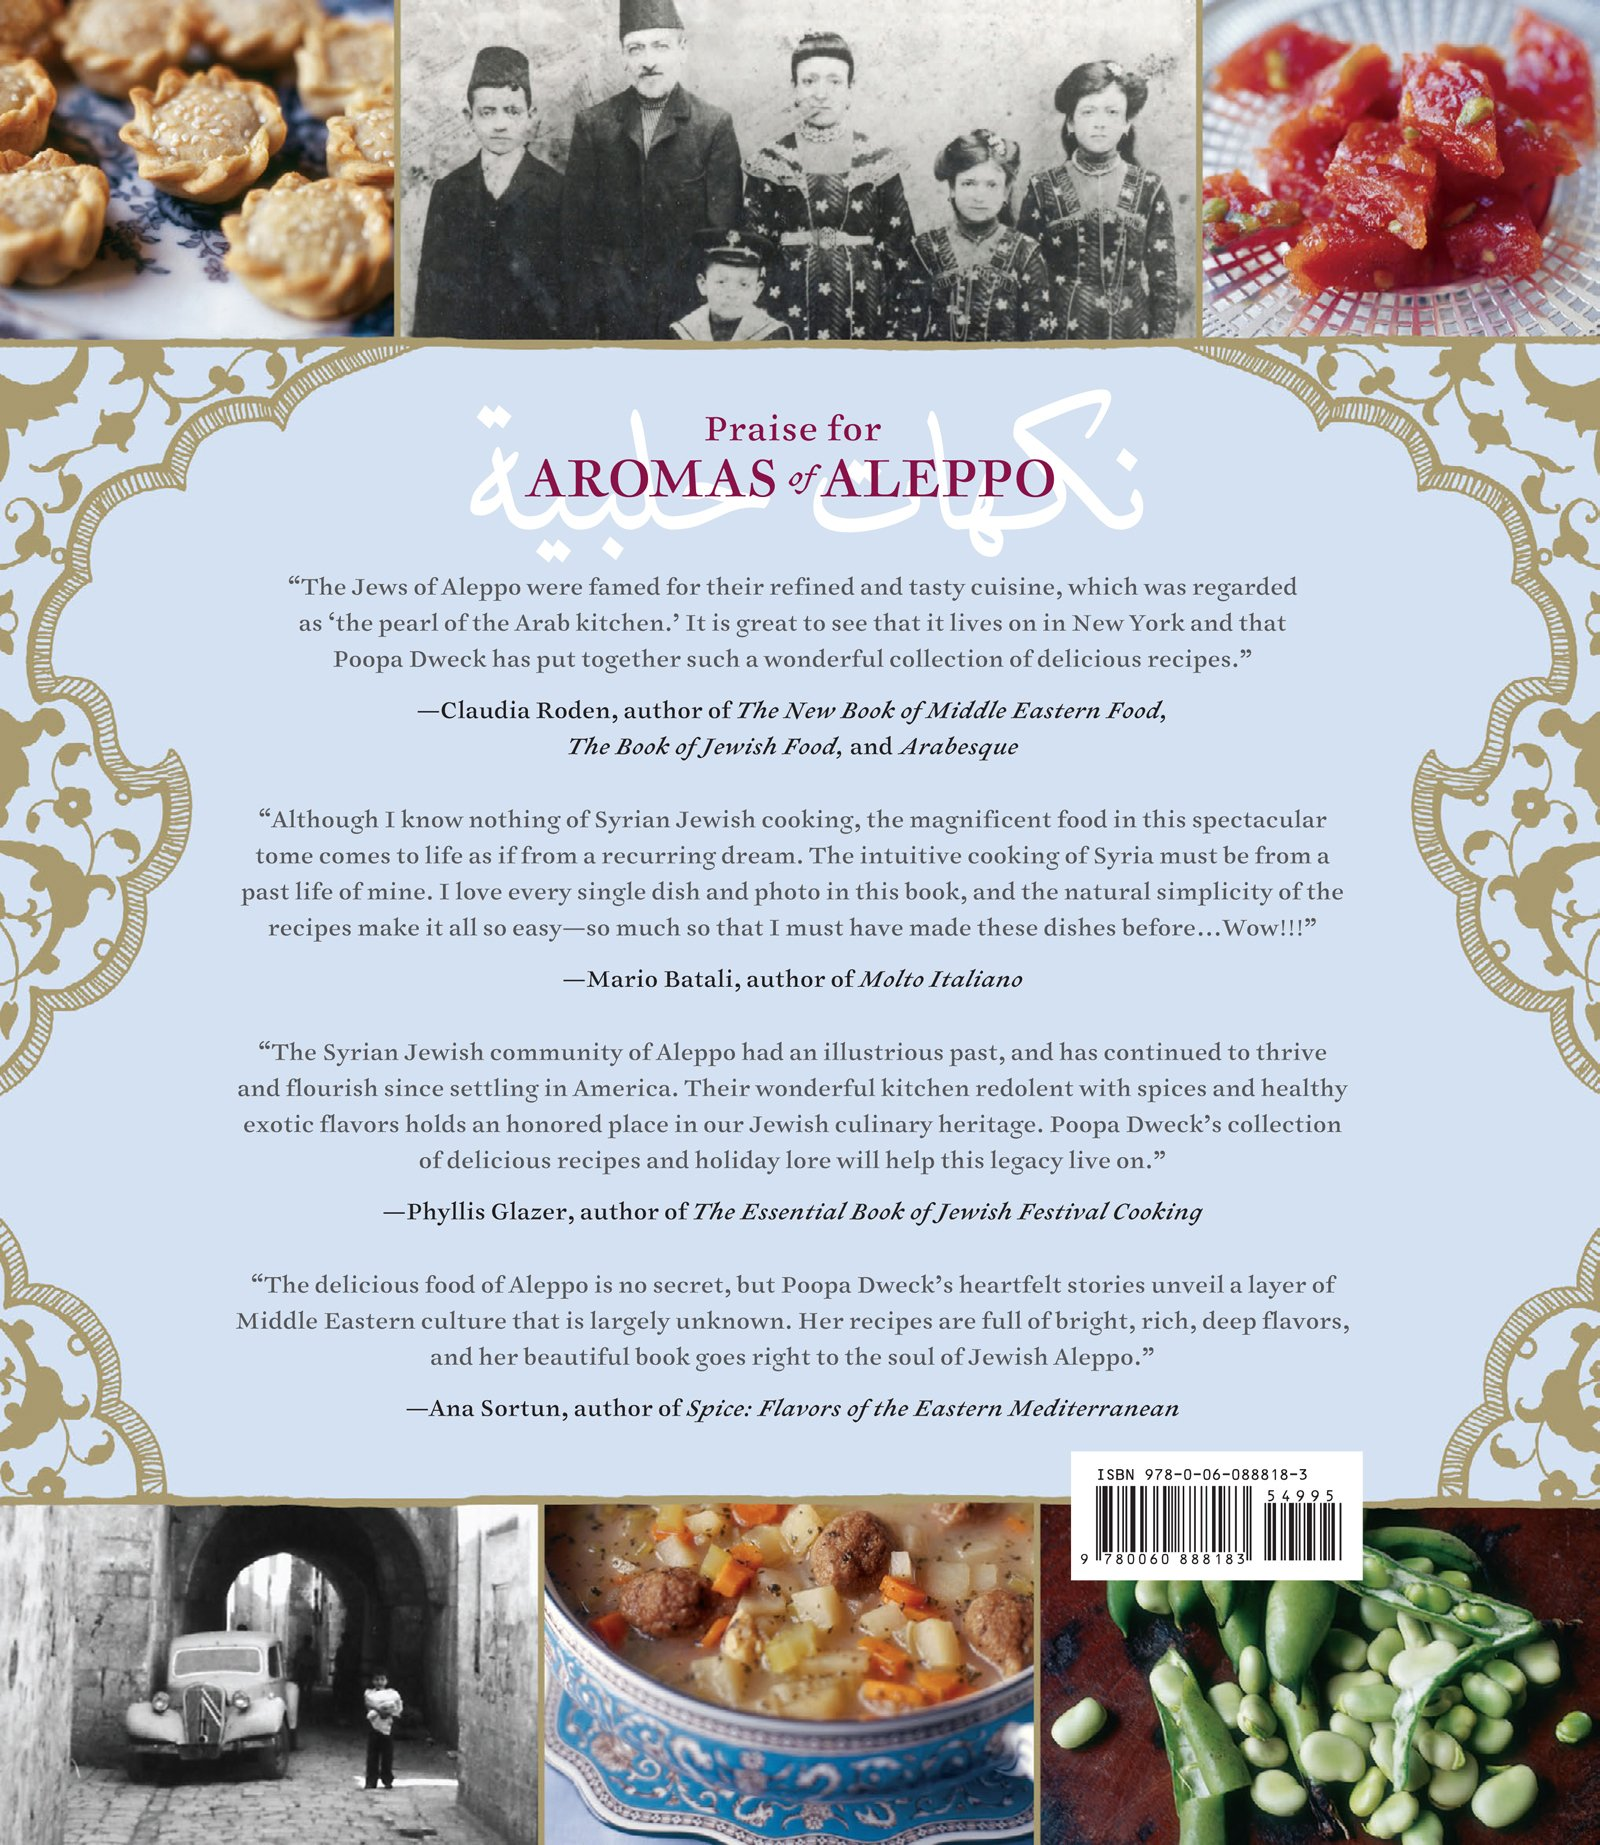 Aromas of aleppo the legendary cuisine of syrian jews amazon aromas of aleppo the legendary cuisine of syrian jews amazon poopa dweck libros en idiomas extranjeros forumfinder